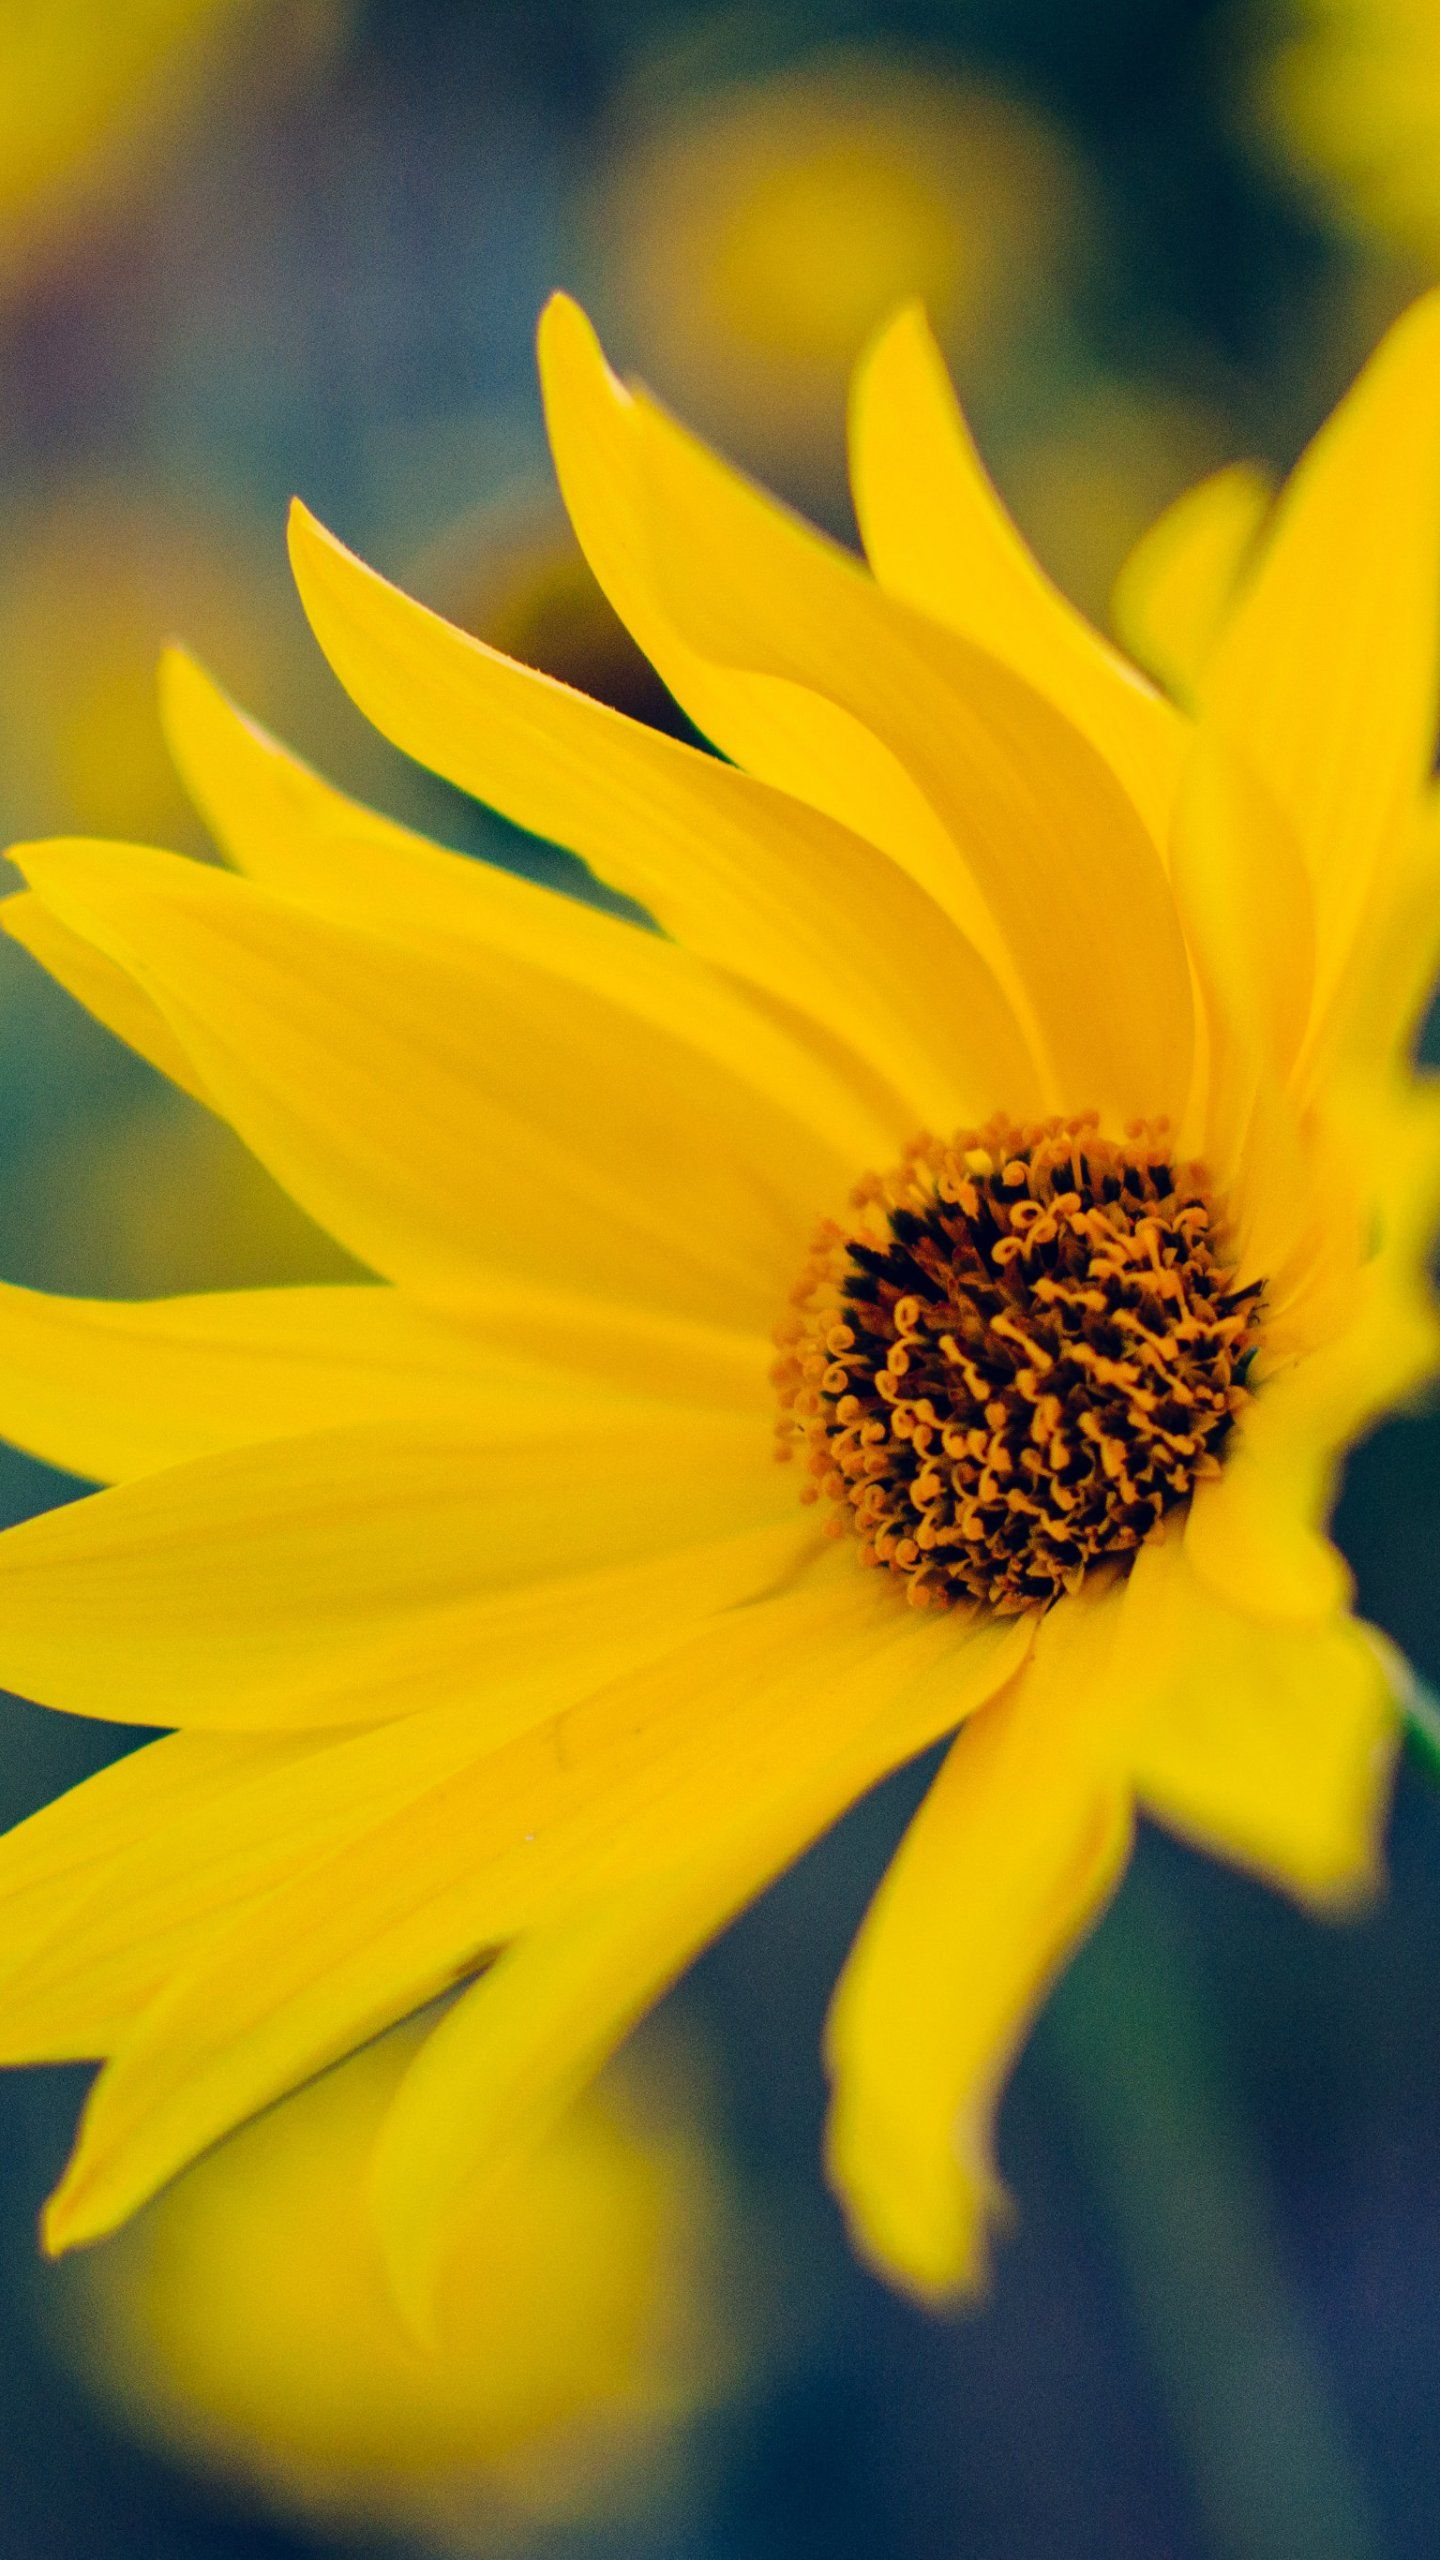 Yellow Flower Wallpaper Iphone Android Desktop Backgrounds